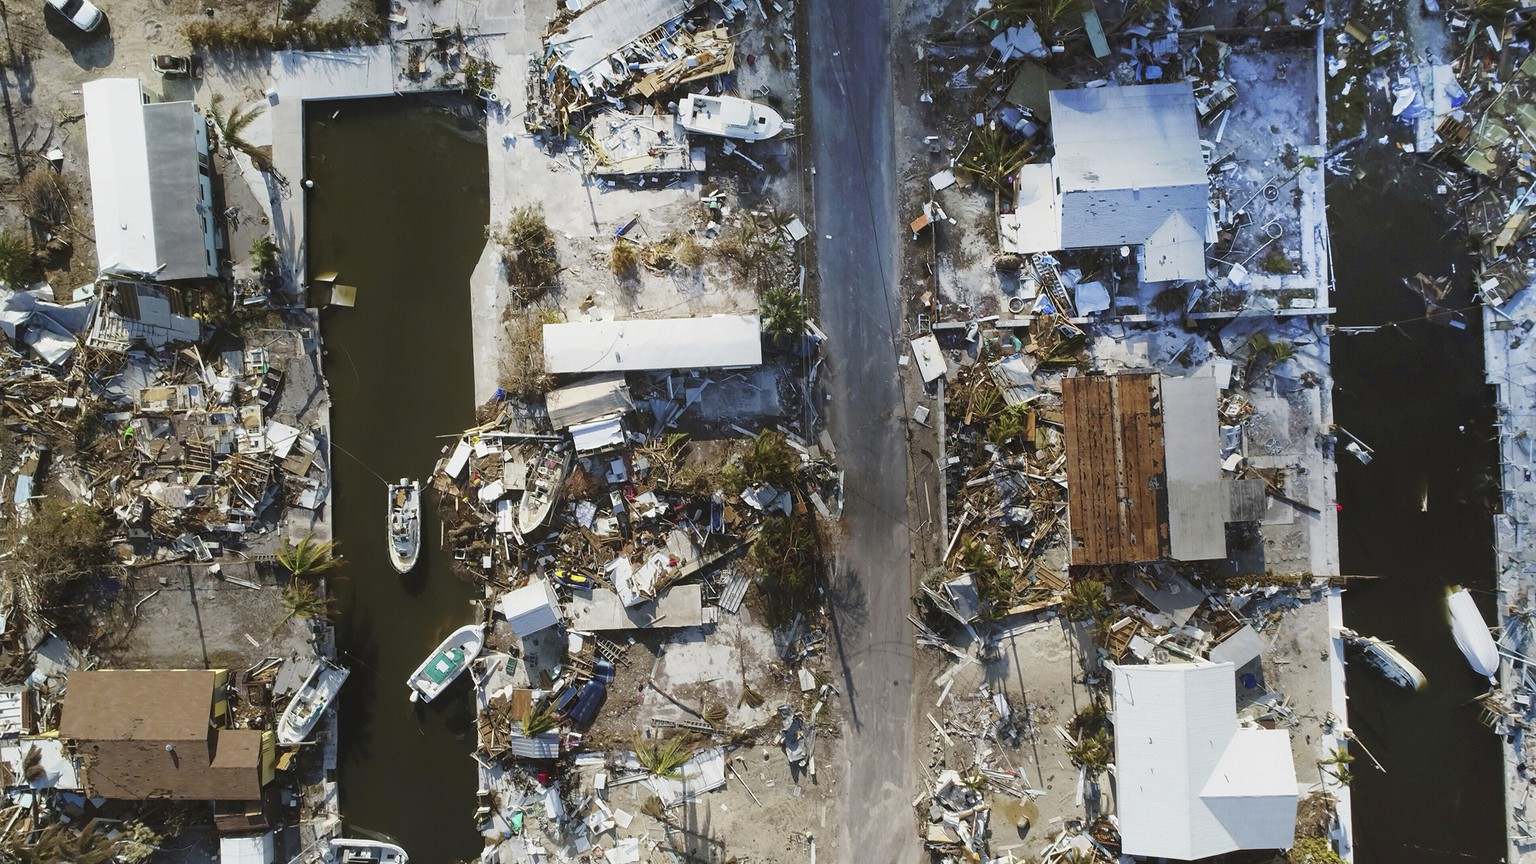 This Wednesday, Sept. 13, 2017 photo shows homes leveled by Hurricane Irma on Big Pine Key, Fla. Hurricane Irma did more than damage homes and wash out roads in the Florida Keys. The storm wiped out the dreams of many of the small entrepreneurs who populate the independent-minded islands.  (Rob O'Neal /The Key West Citizen via AP)